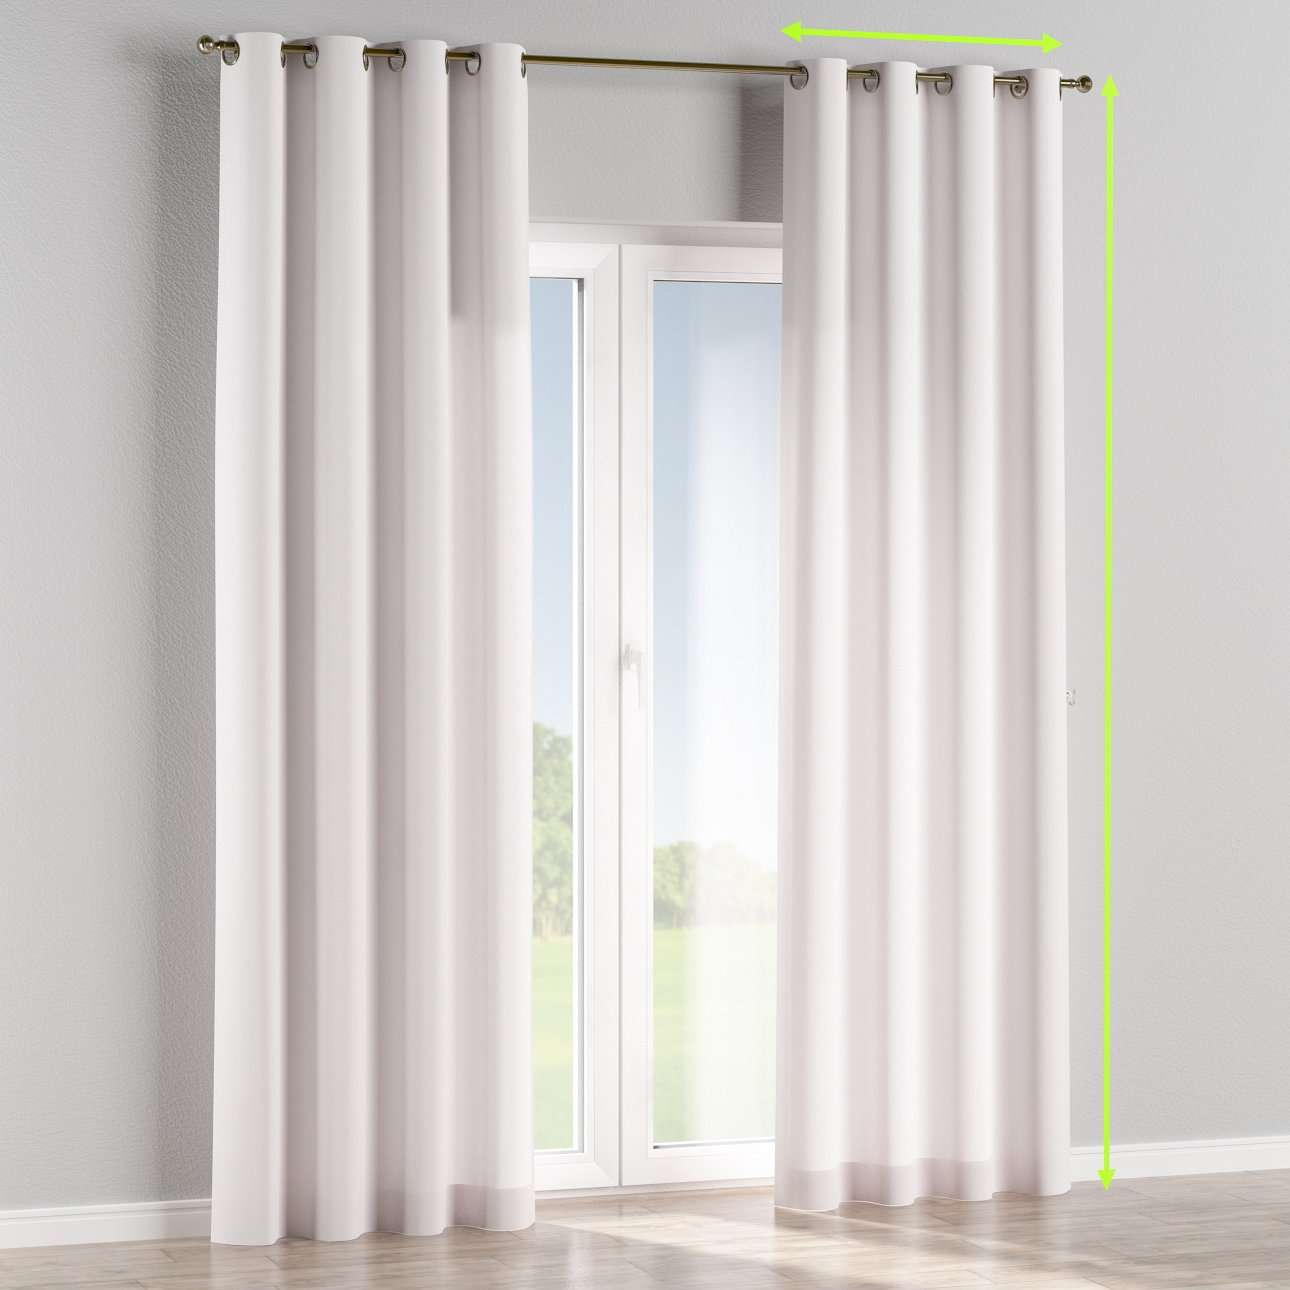 Eyelet curtains in collection Cotton Panama, fabric: 702-34